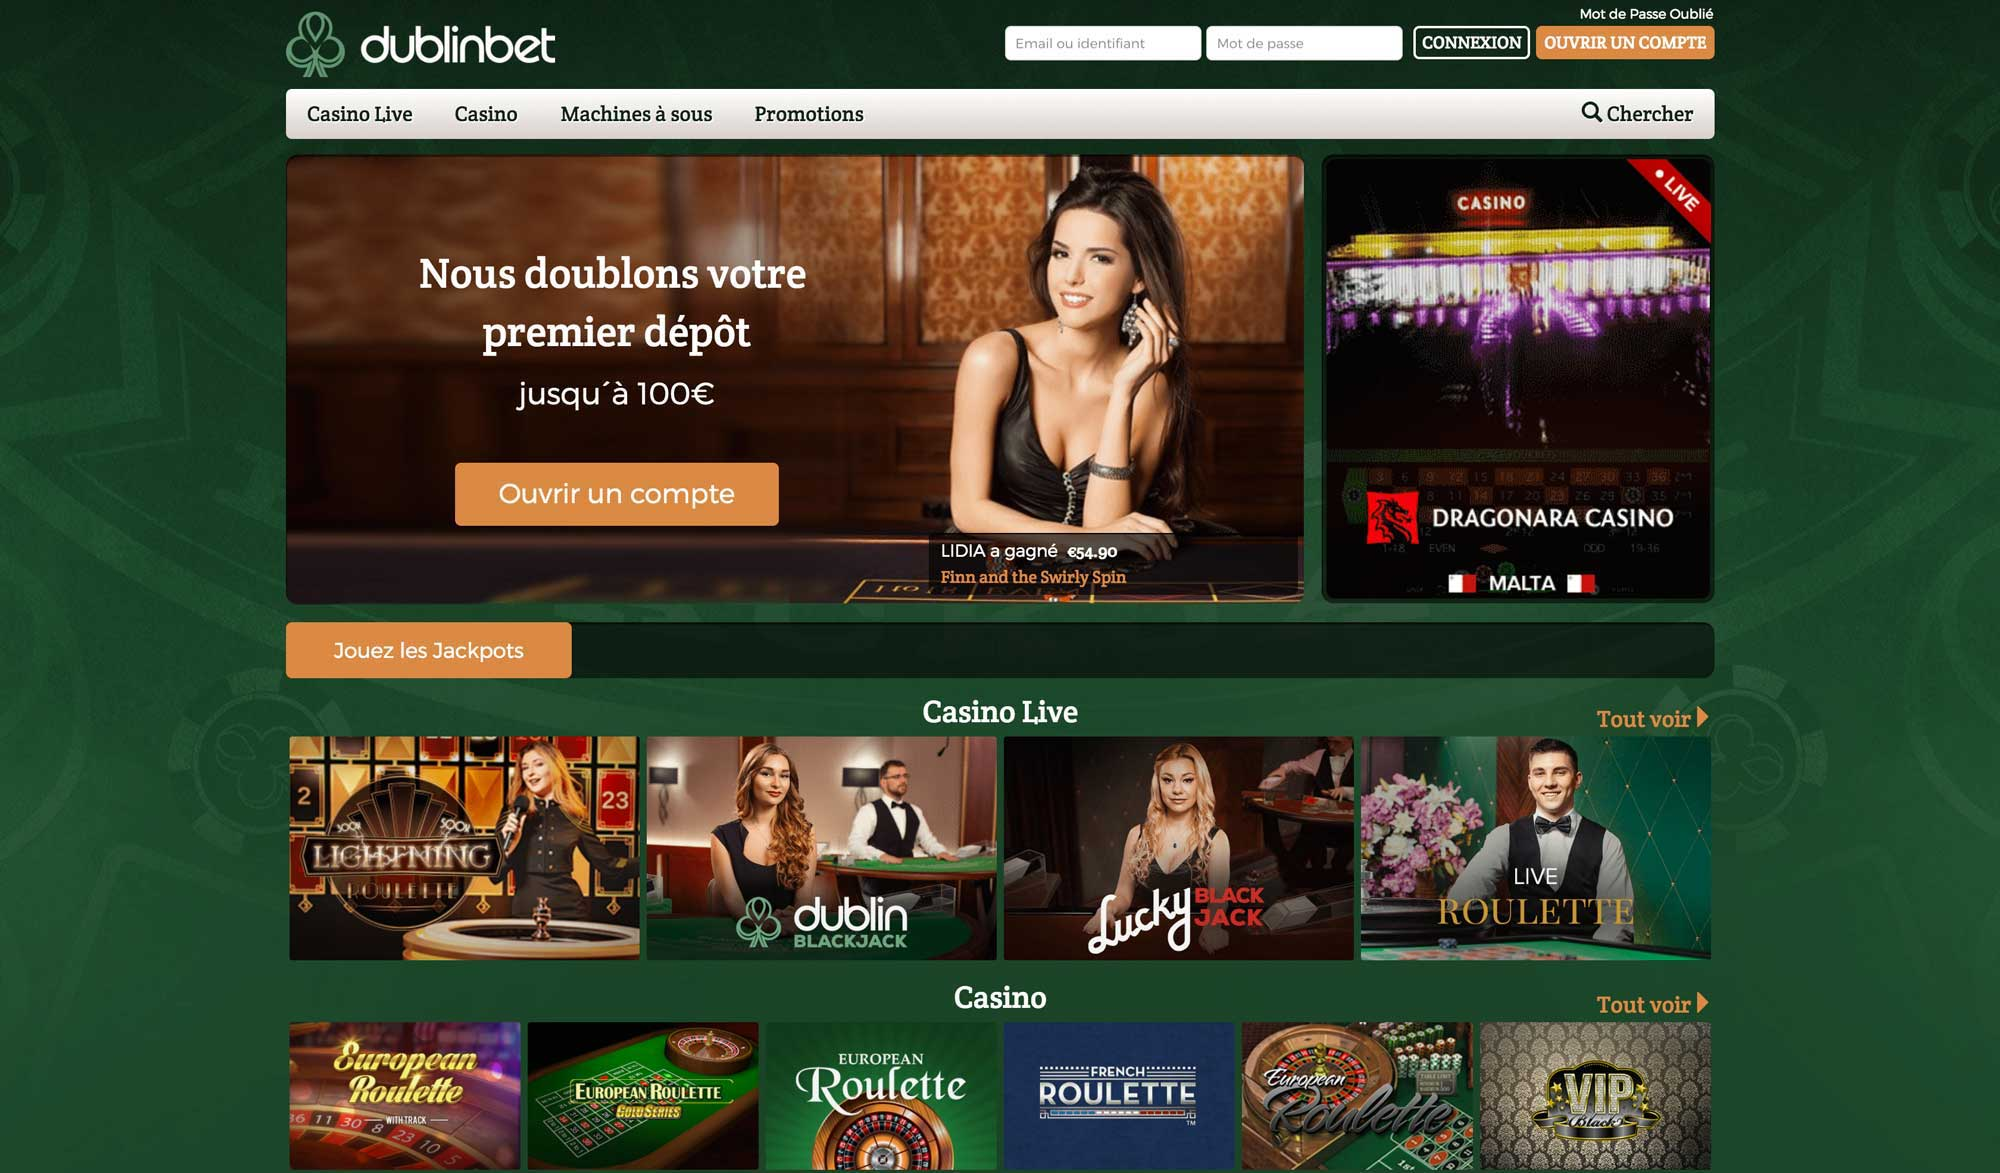 dublinbet casino officiel